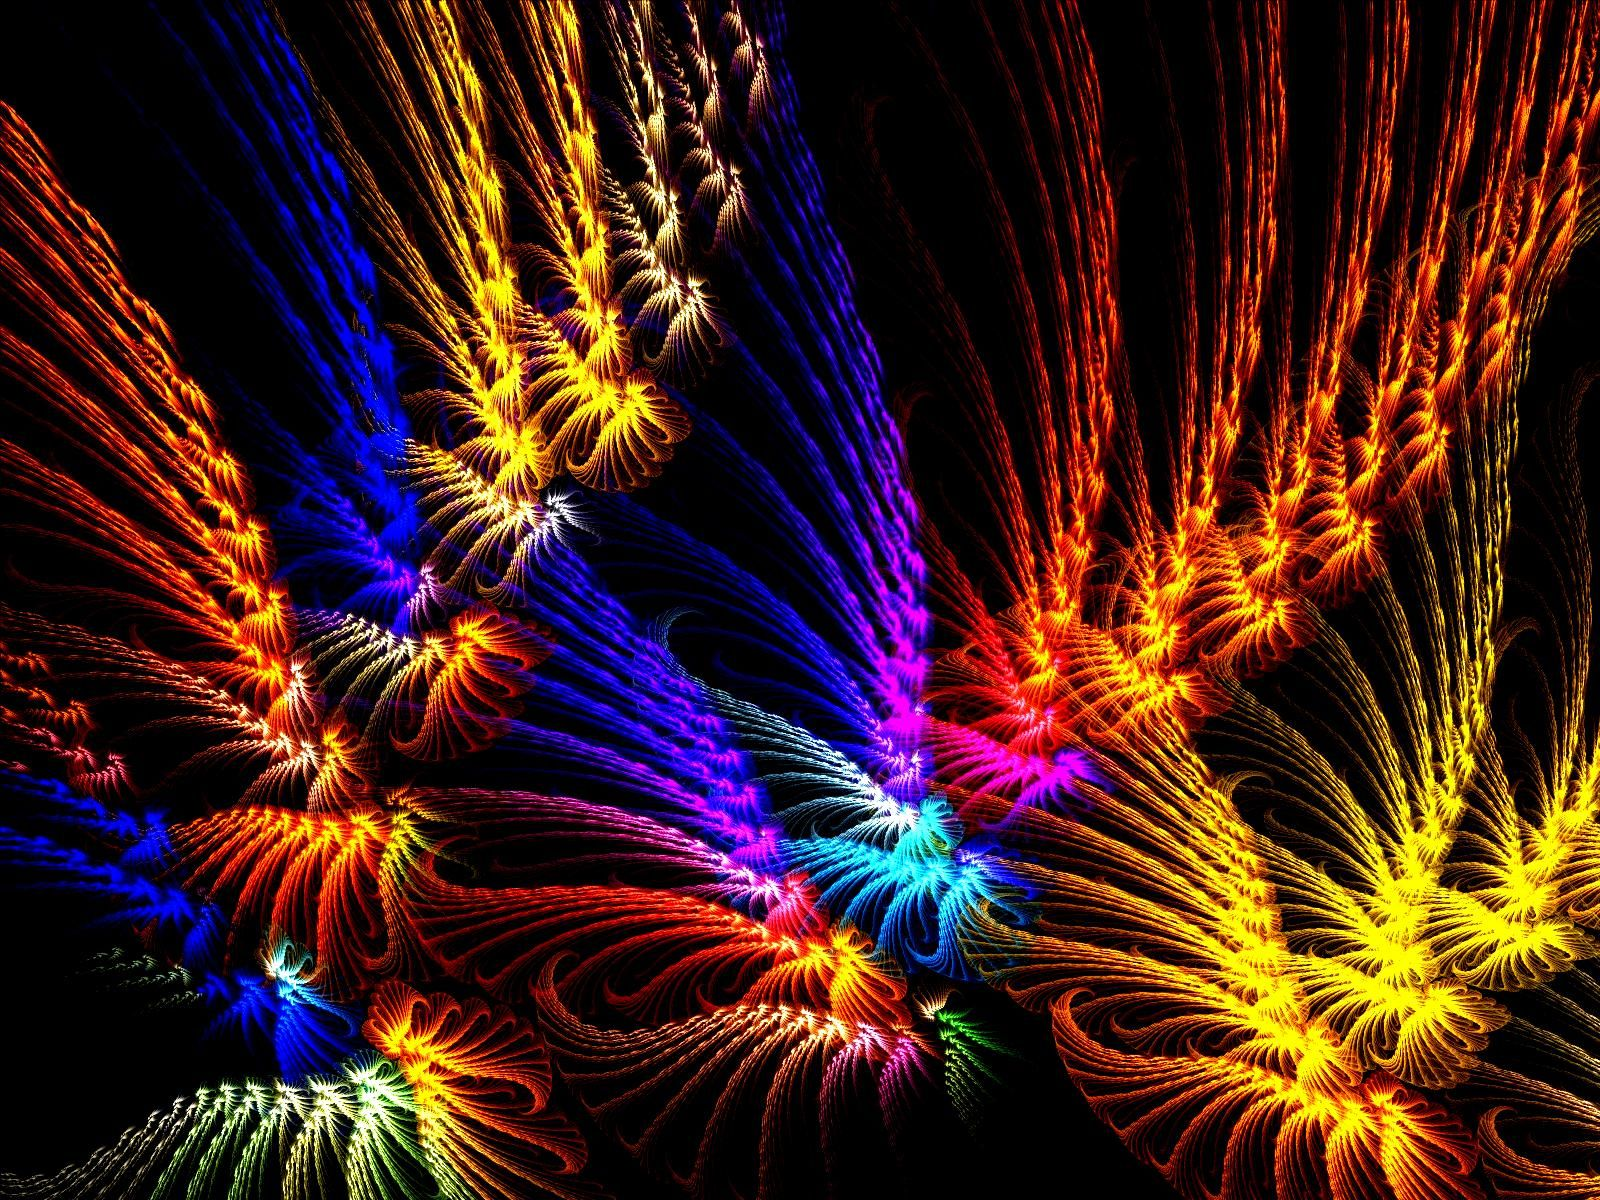 Tool Band Wallpaper Inside The Rainbow Fractal Abstract